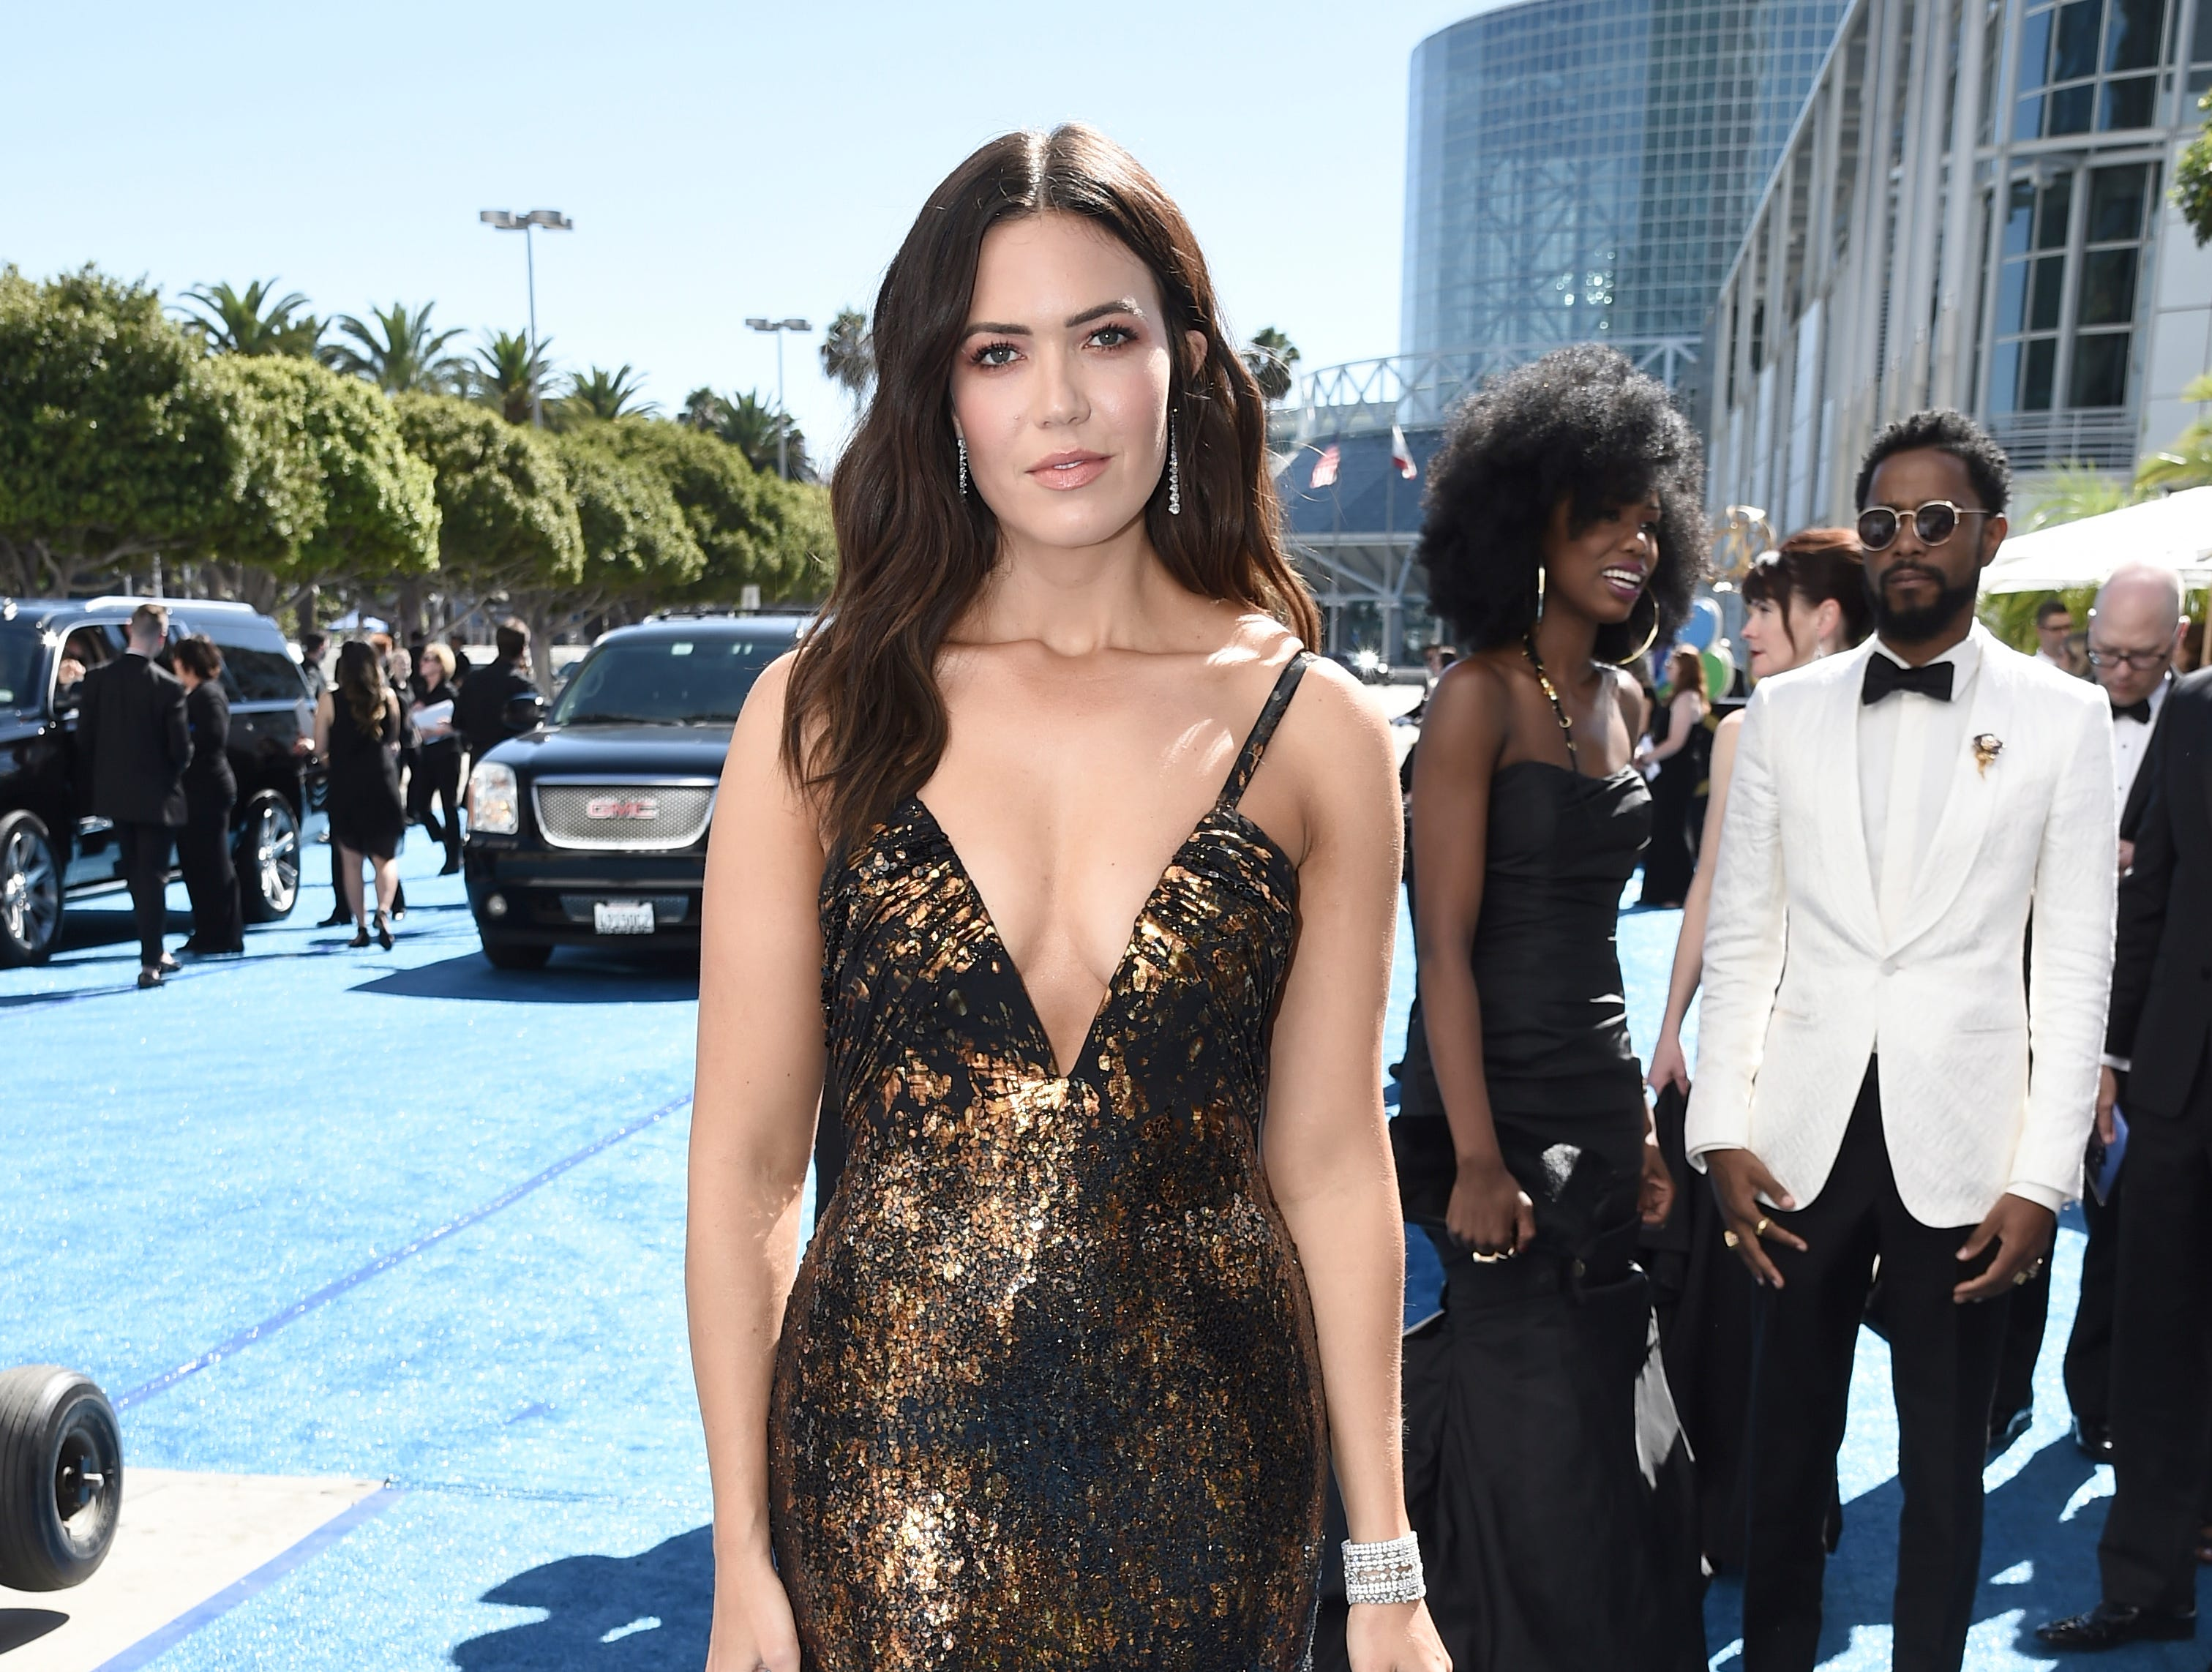 Mandy Moore arrives at the 70th Primetime Emmy Awards on Monday, Sept. 17, 2018, at the Microsoft Theater in Los Angeles.